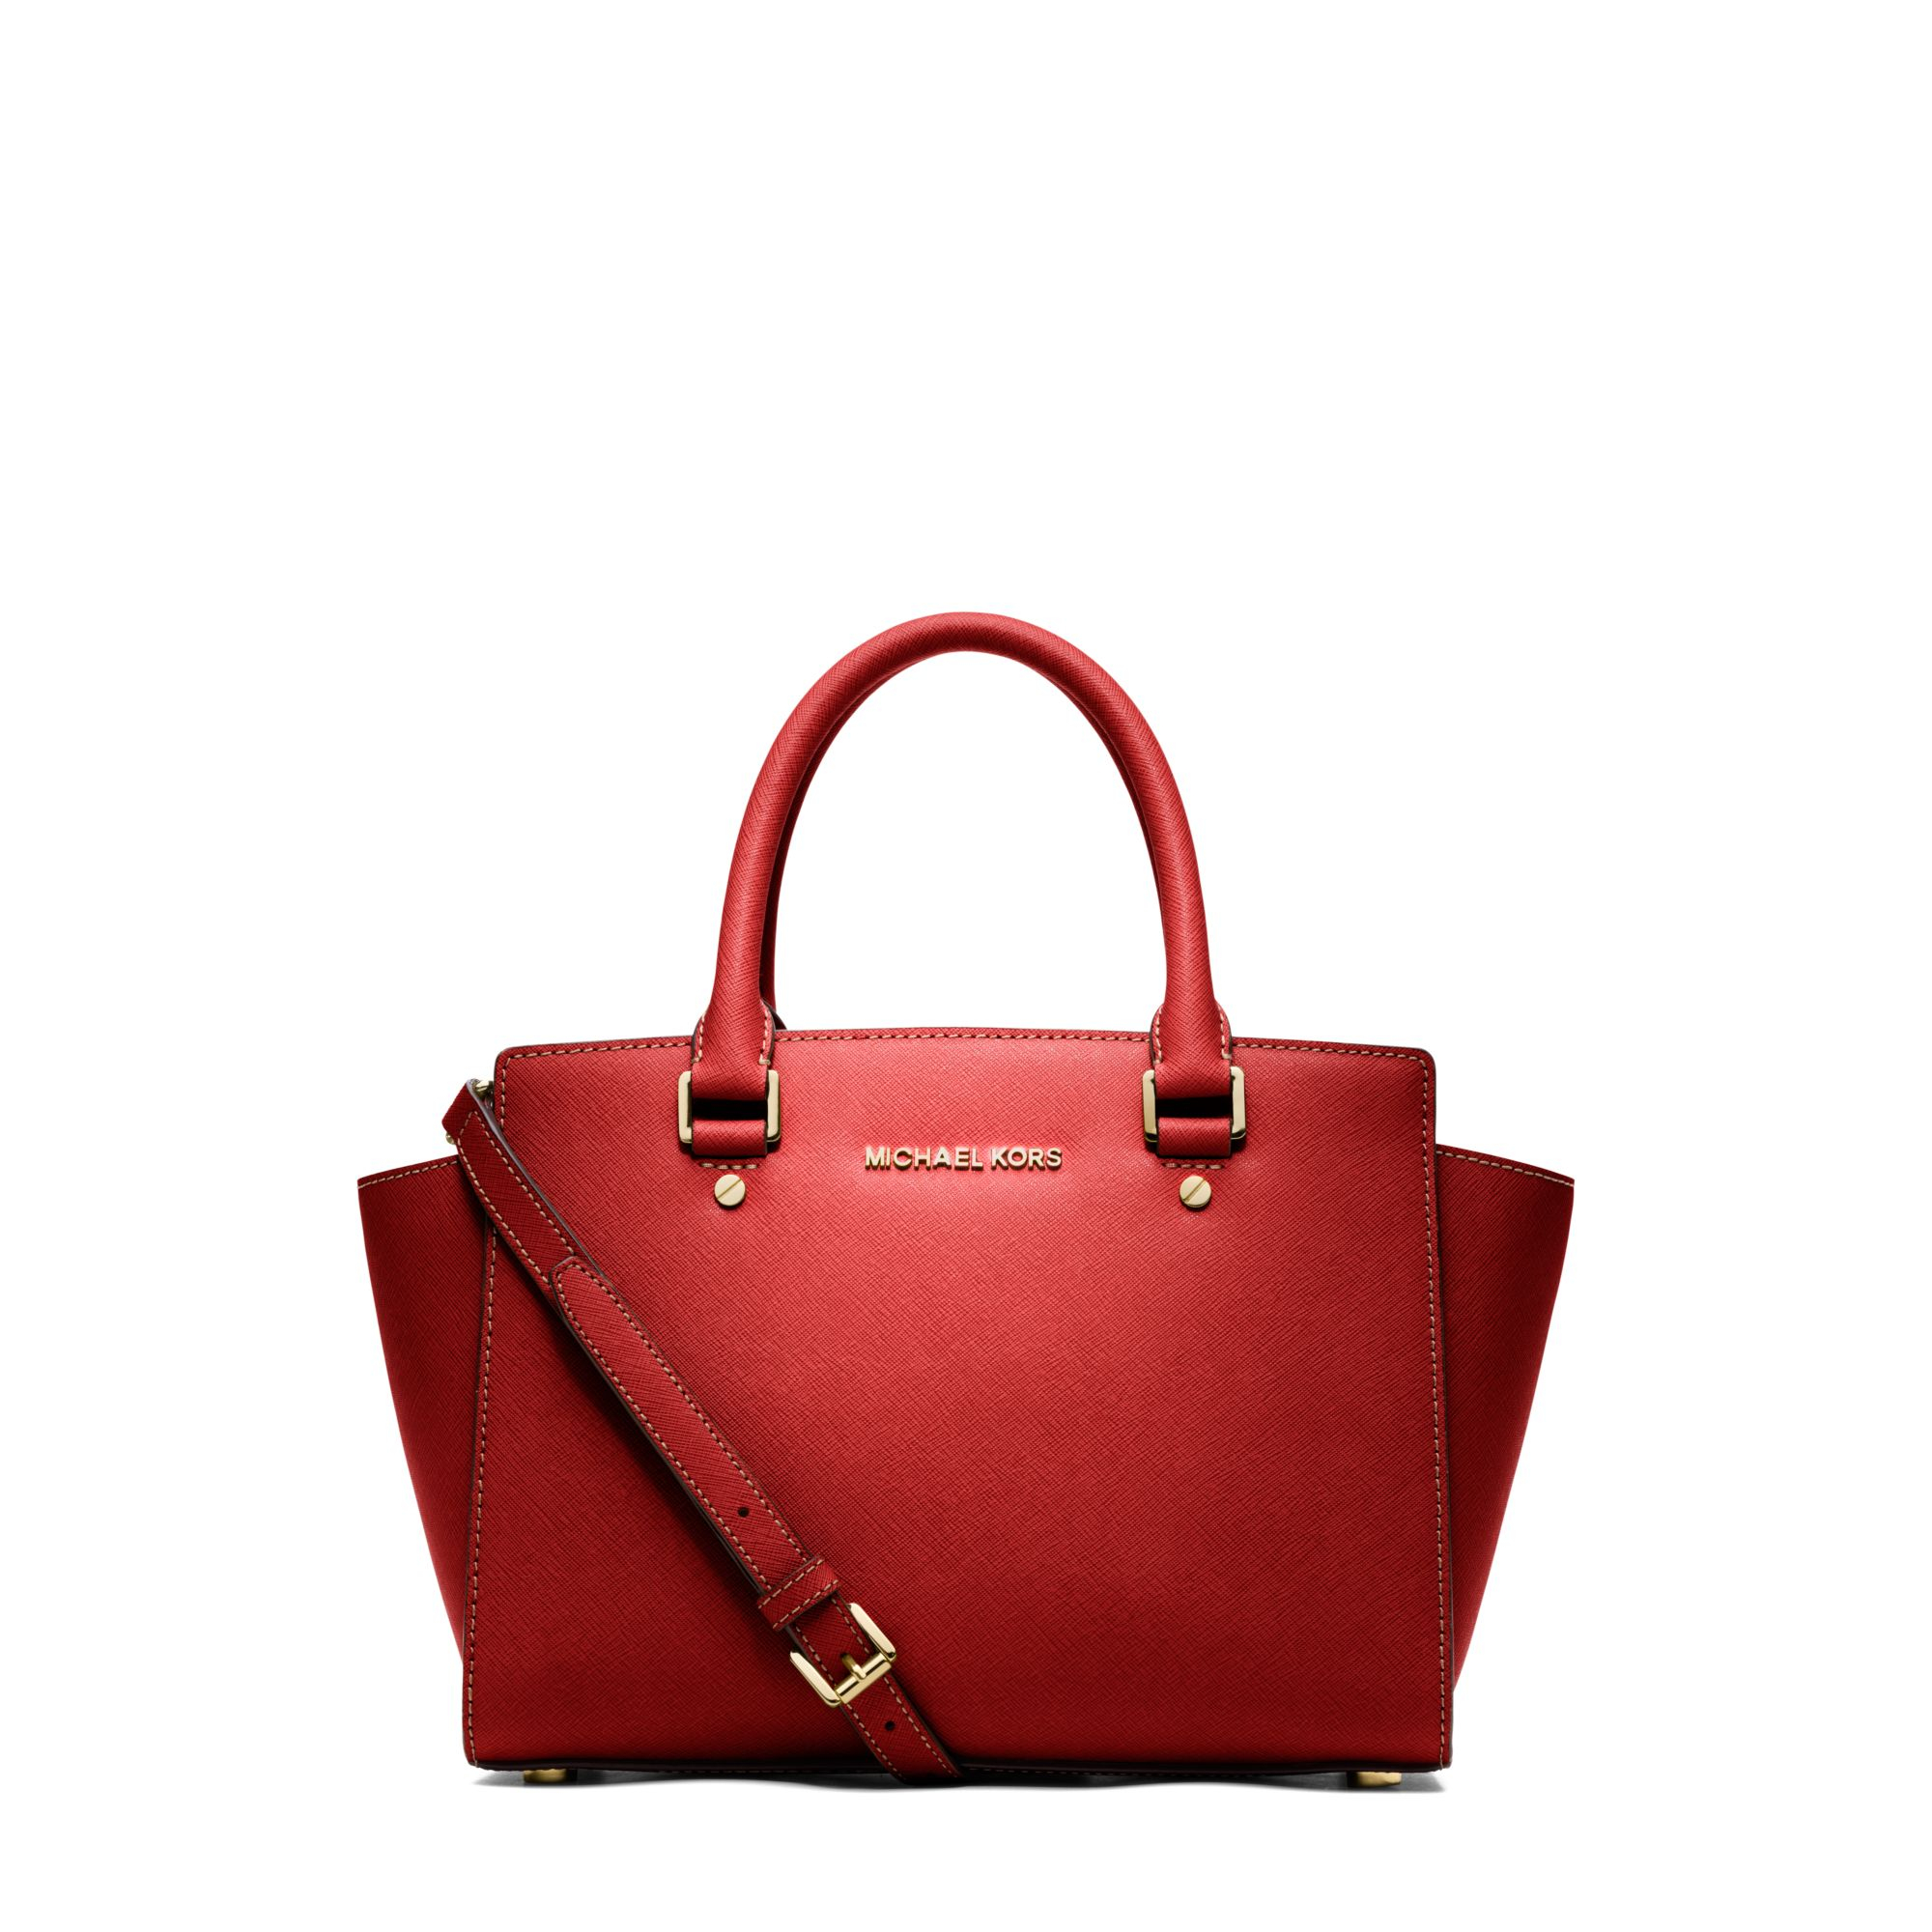 michael kors selma saffiano leather medium satchel in red mandarin lyst. Black Bedroom Furniture Sets. Home Design Ideas